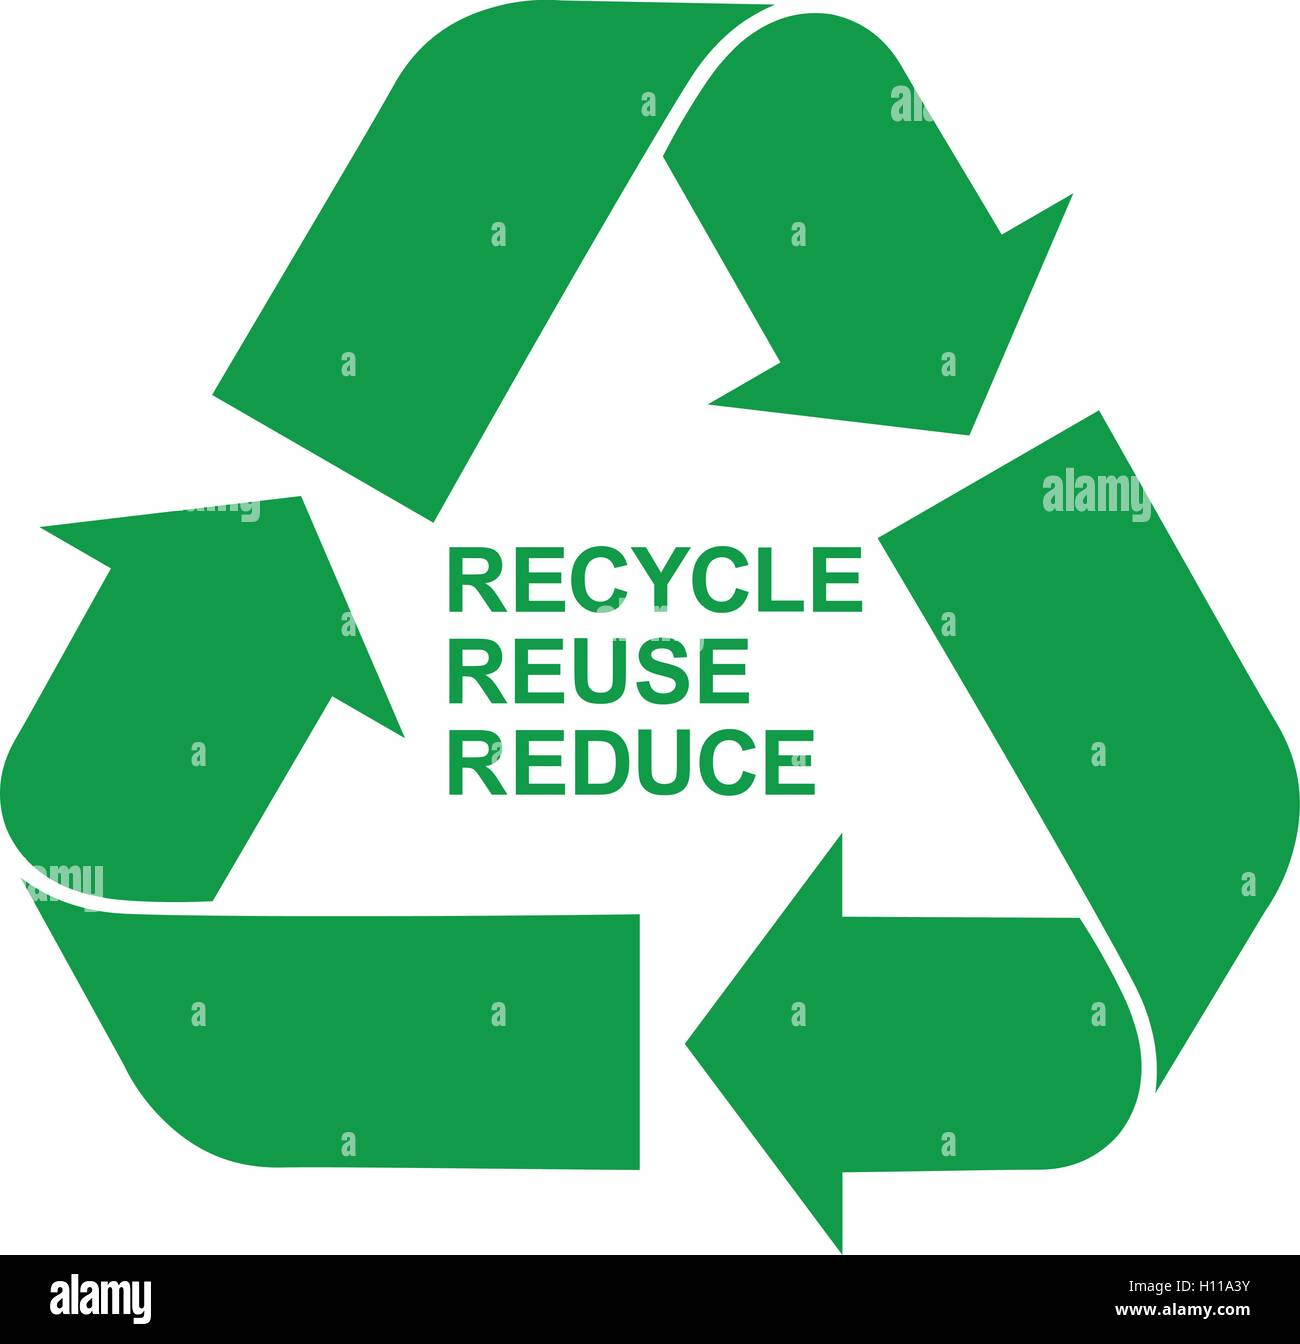 Recycle Reuse Reduce Green Symbol Isolated Green Recycling Icon